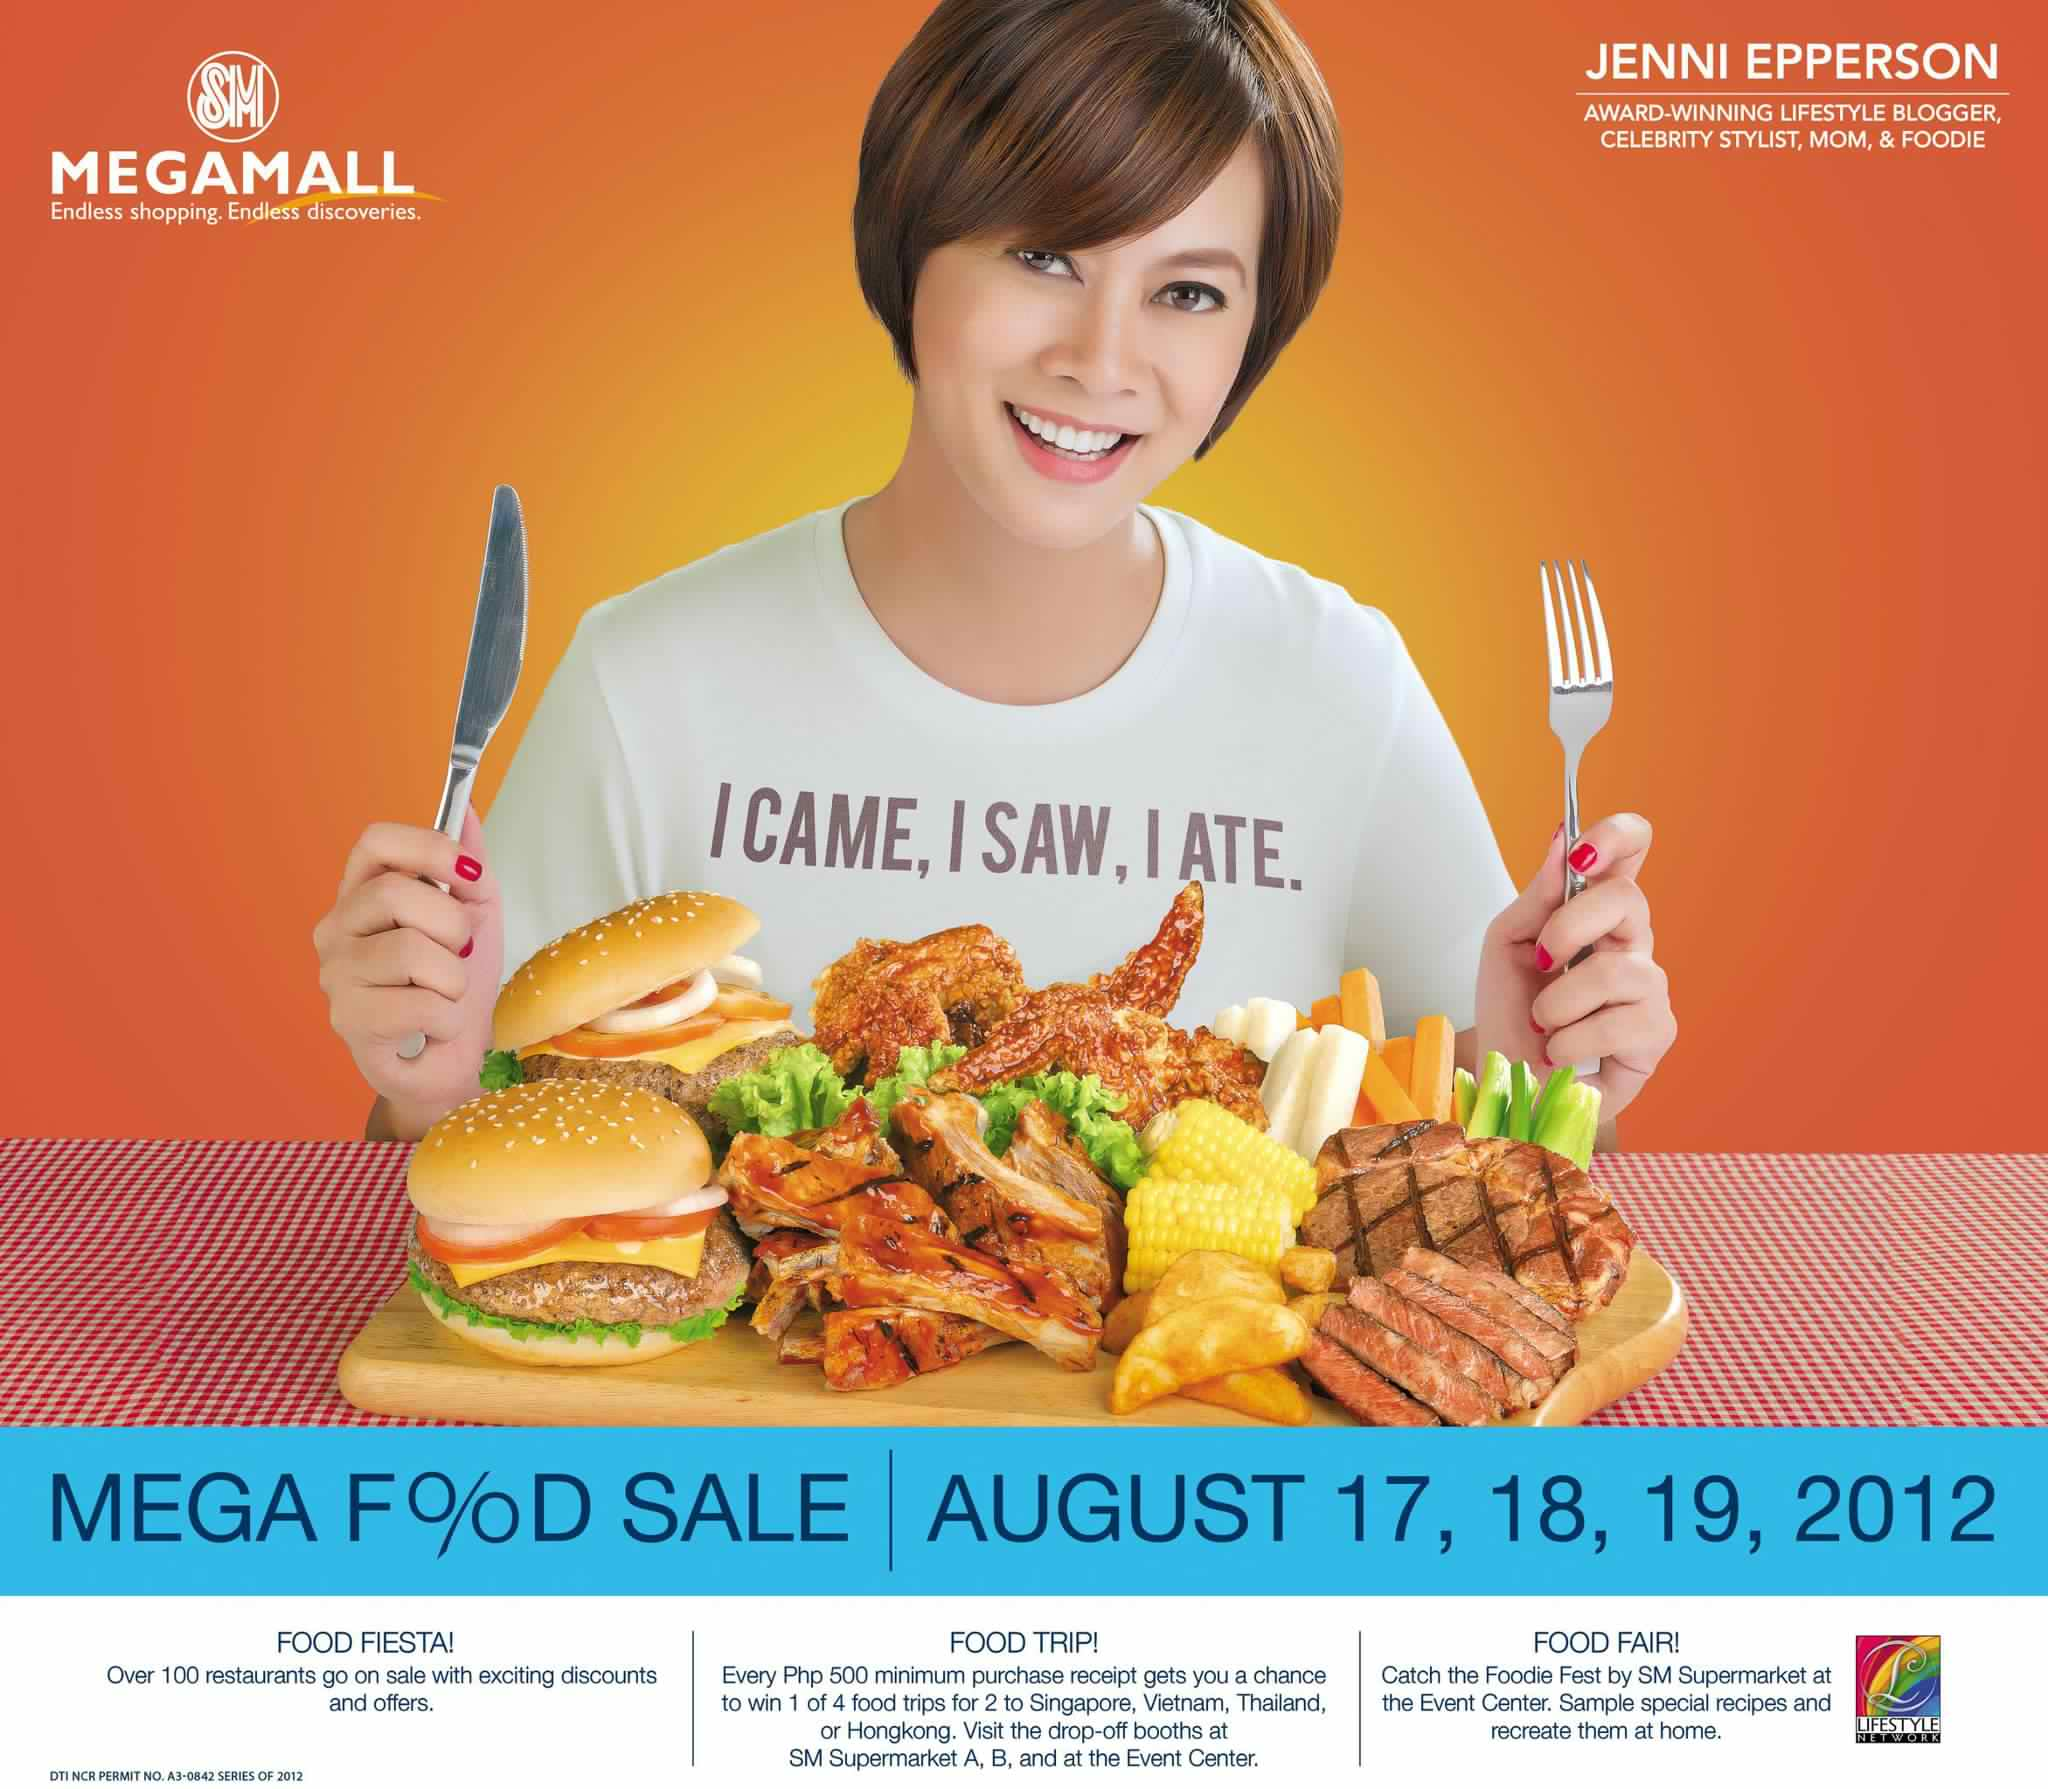 SM Megamall Mega Food Sale August 2012